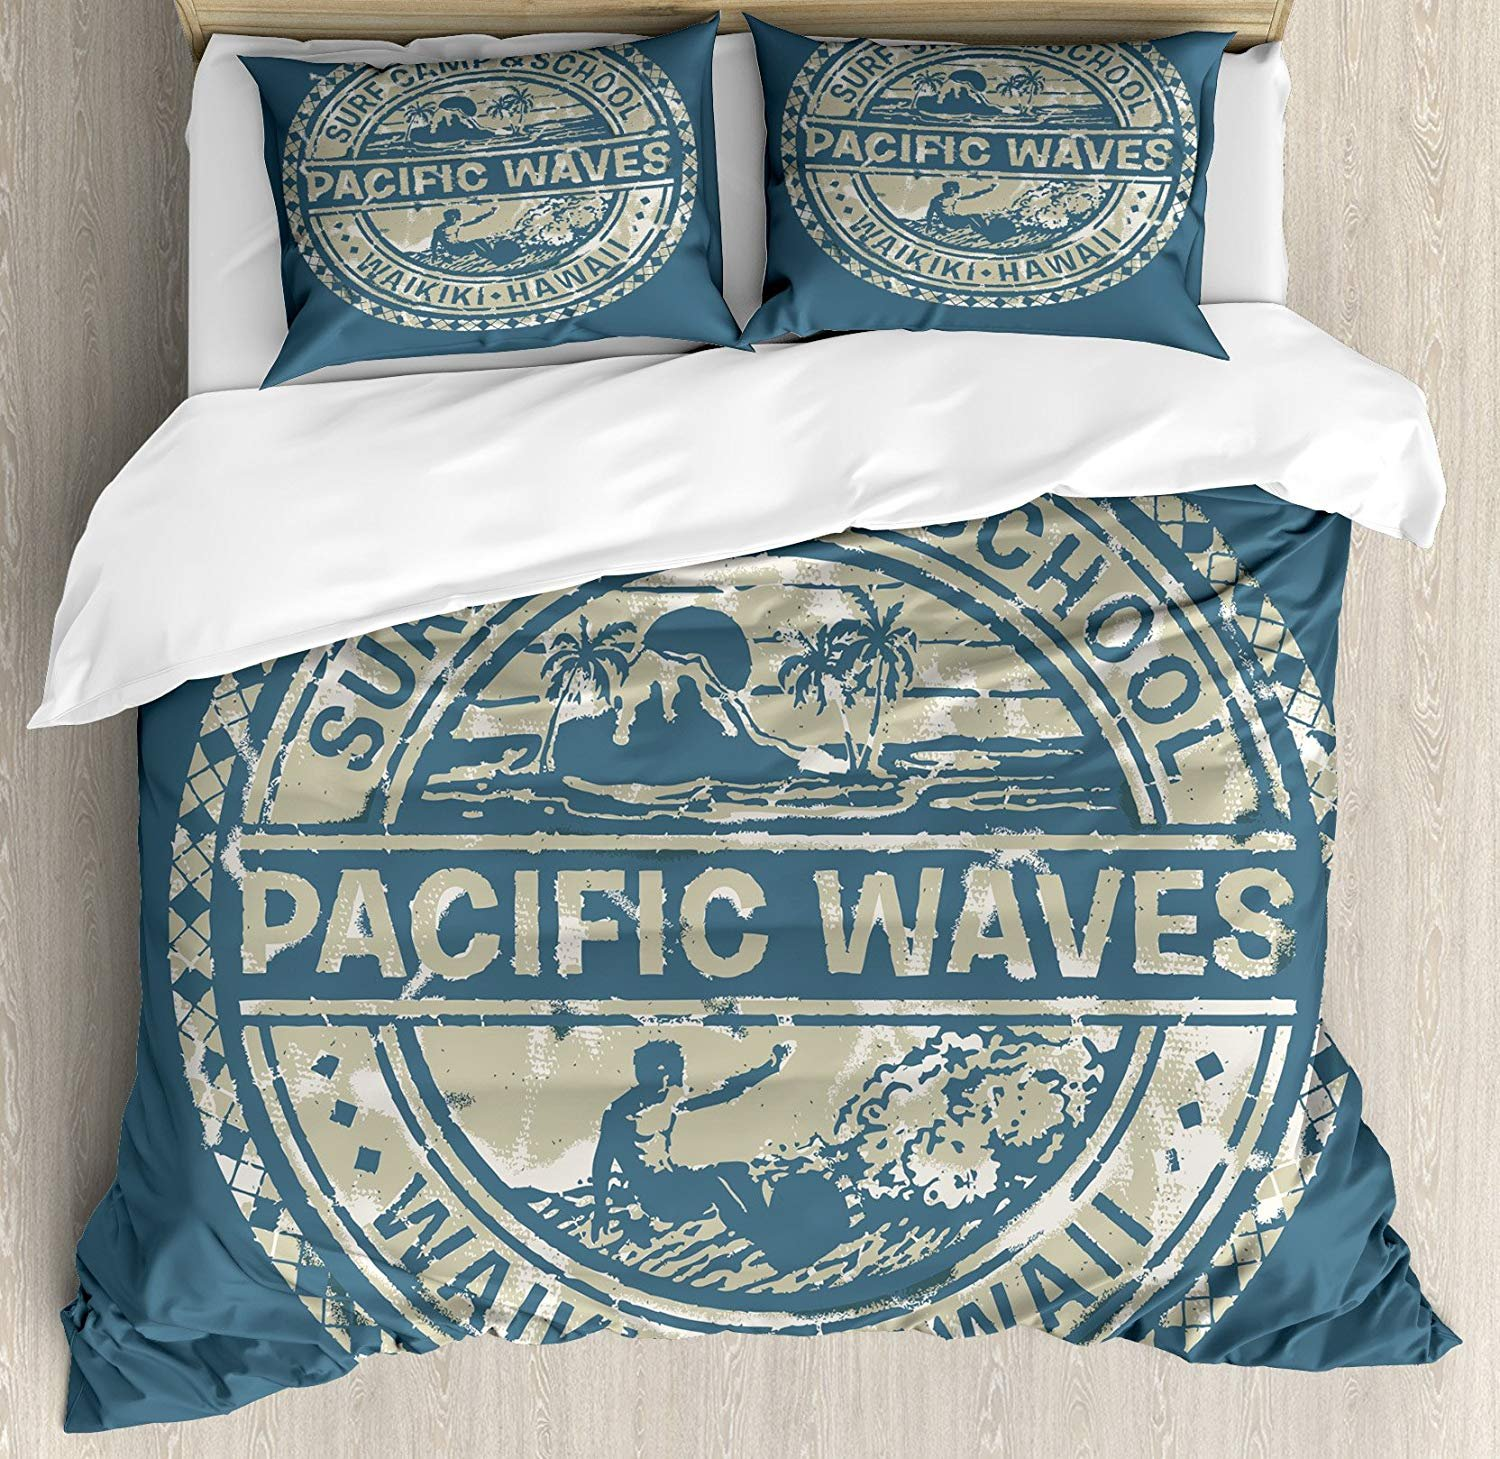 Beauty Decor Modern Duvet Cover Set Pacific Waves Surf Camp and School Hawaii Logo Motif with Artsy Effects Design Microfiber Bedding Sets with Zipper and Corner Ties Khaki Slate Blue (4 Pcs, Twin)